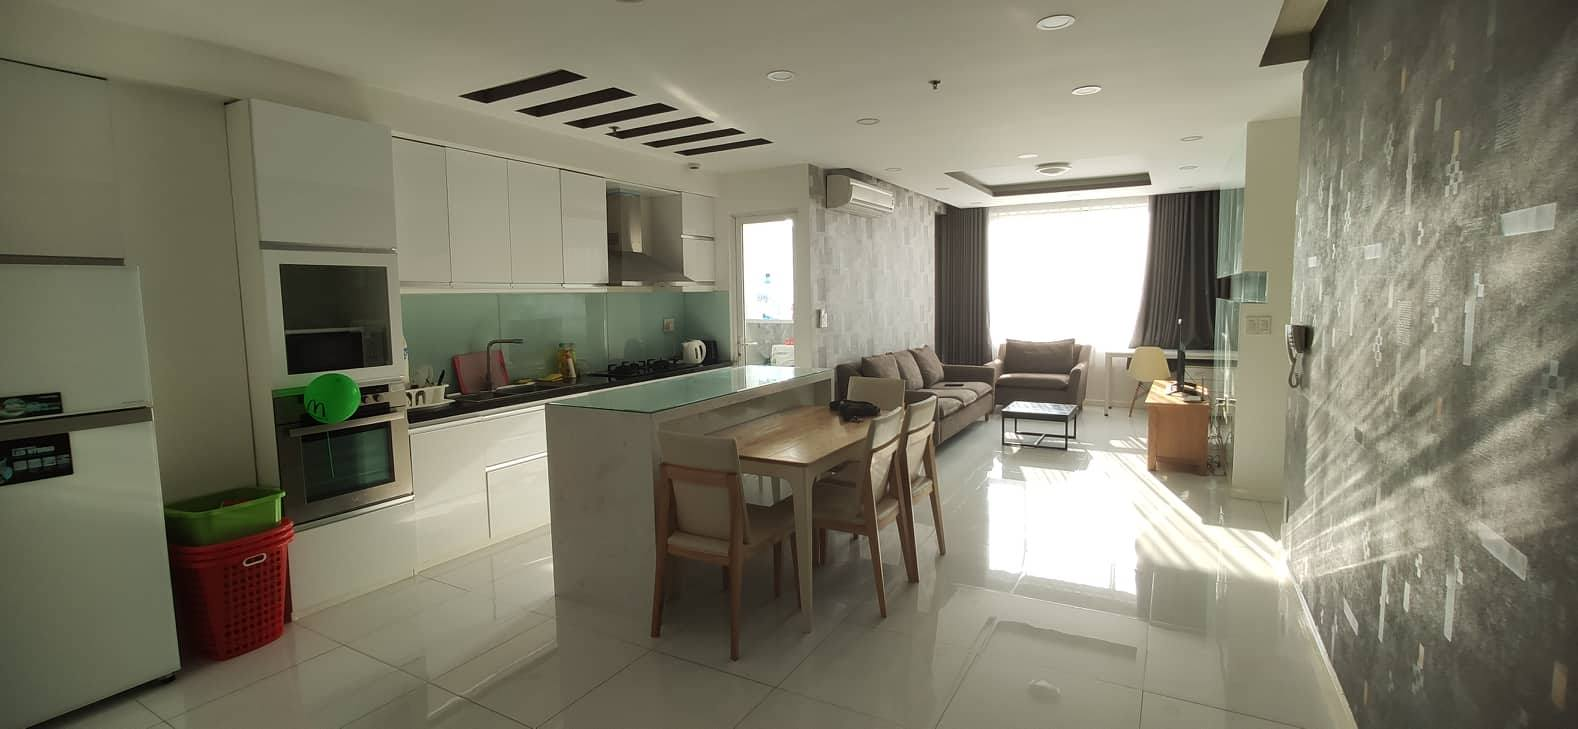 Apartment for rent D205509 (2)